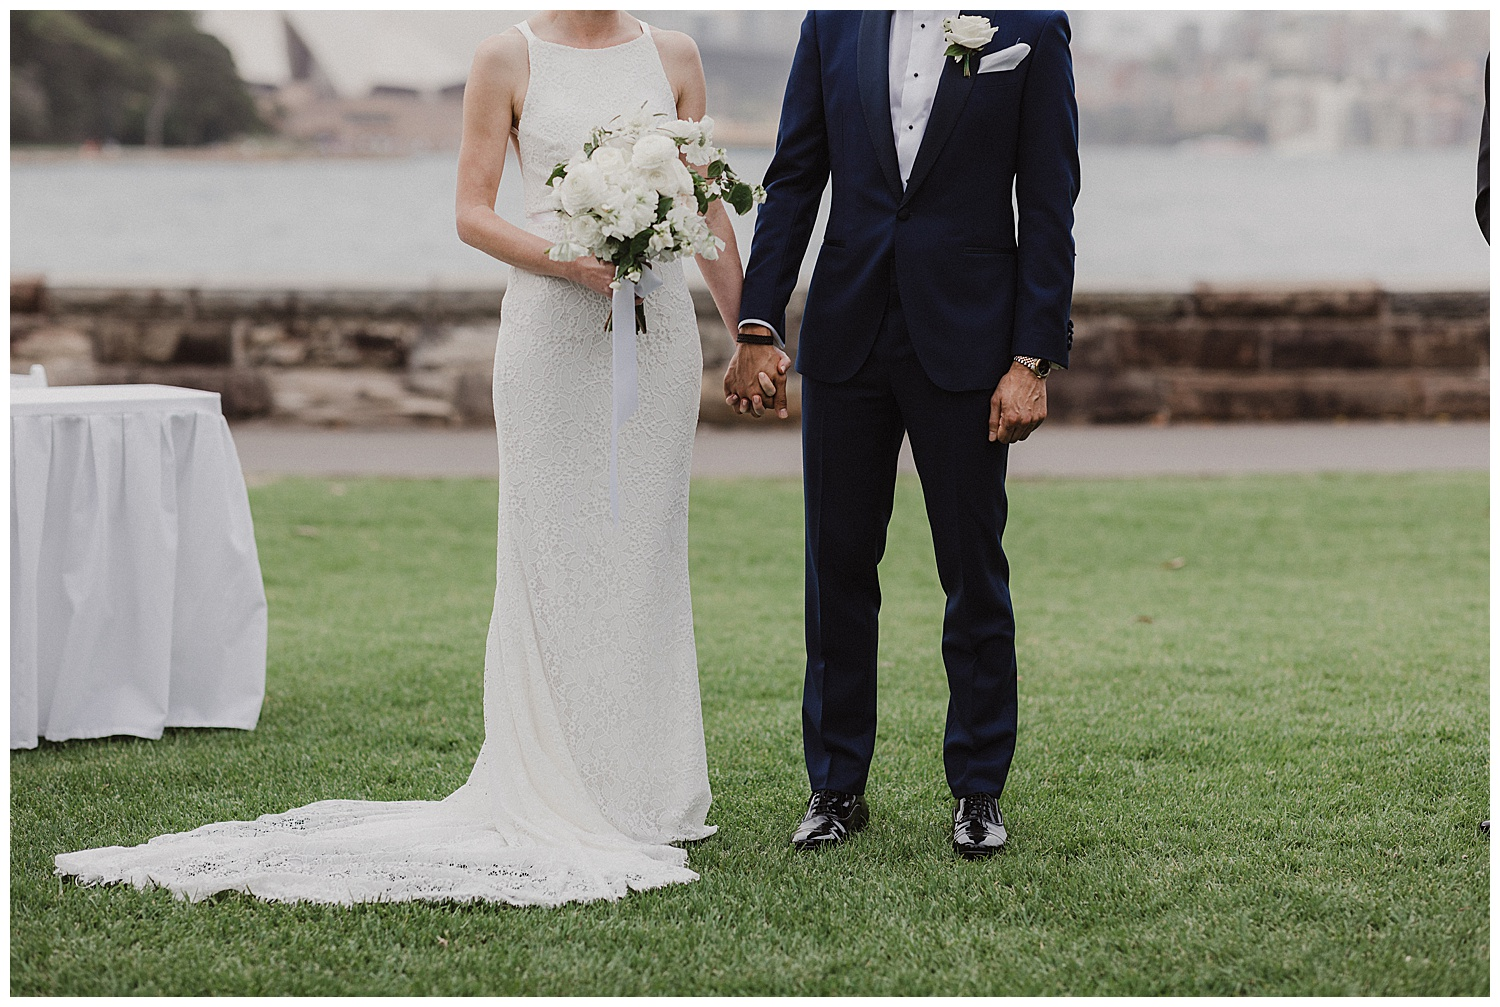 Couple holds hands during wedding. Dress by Karen Willis Holmes, Flowers by Poho, tux by The Bespoke Corner Tailor